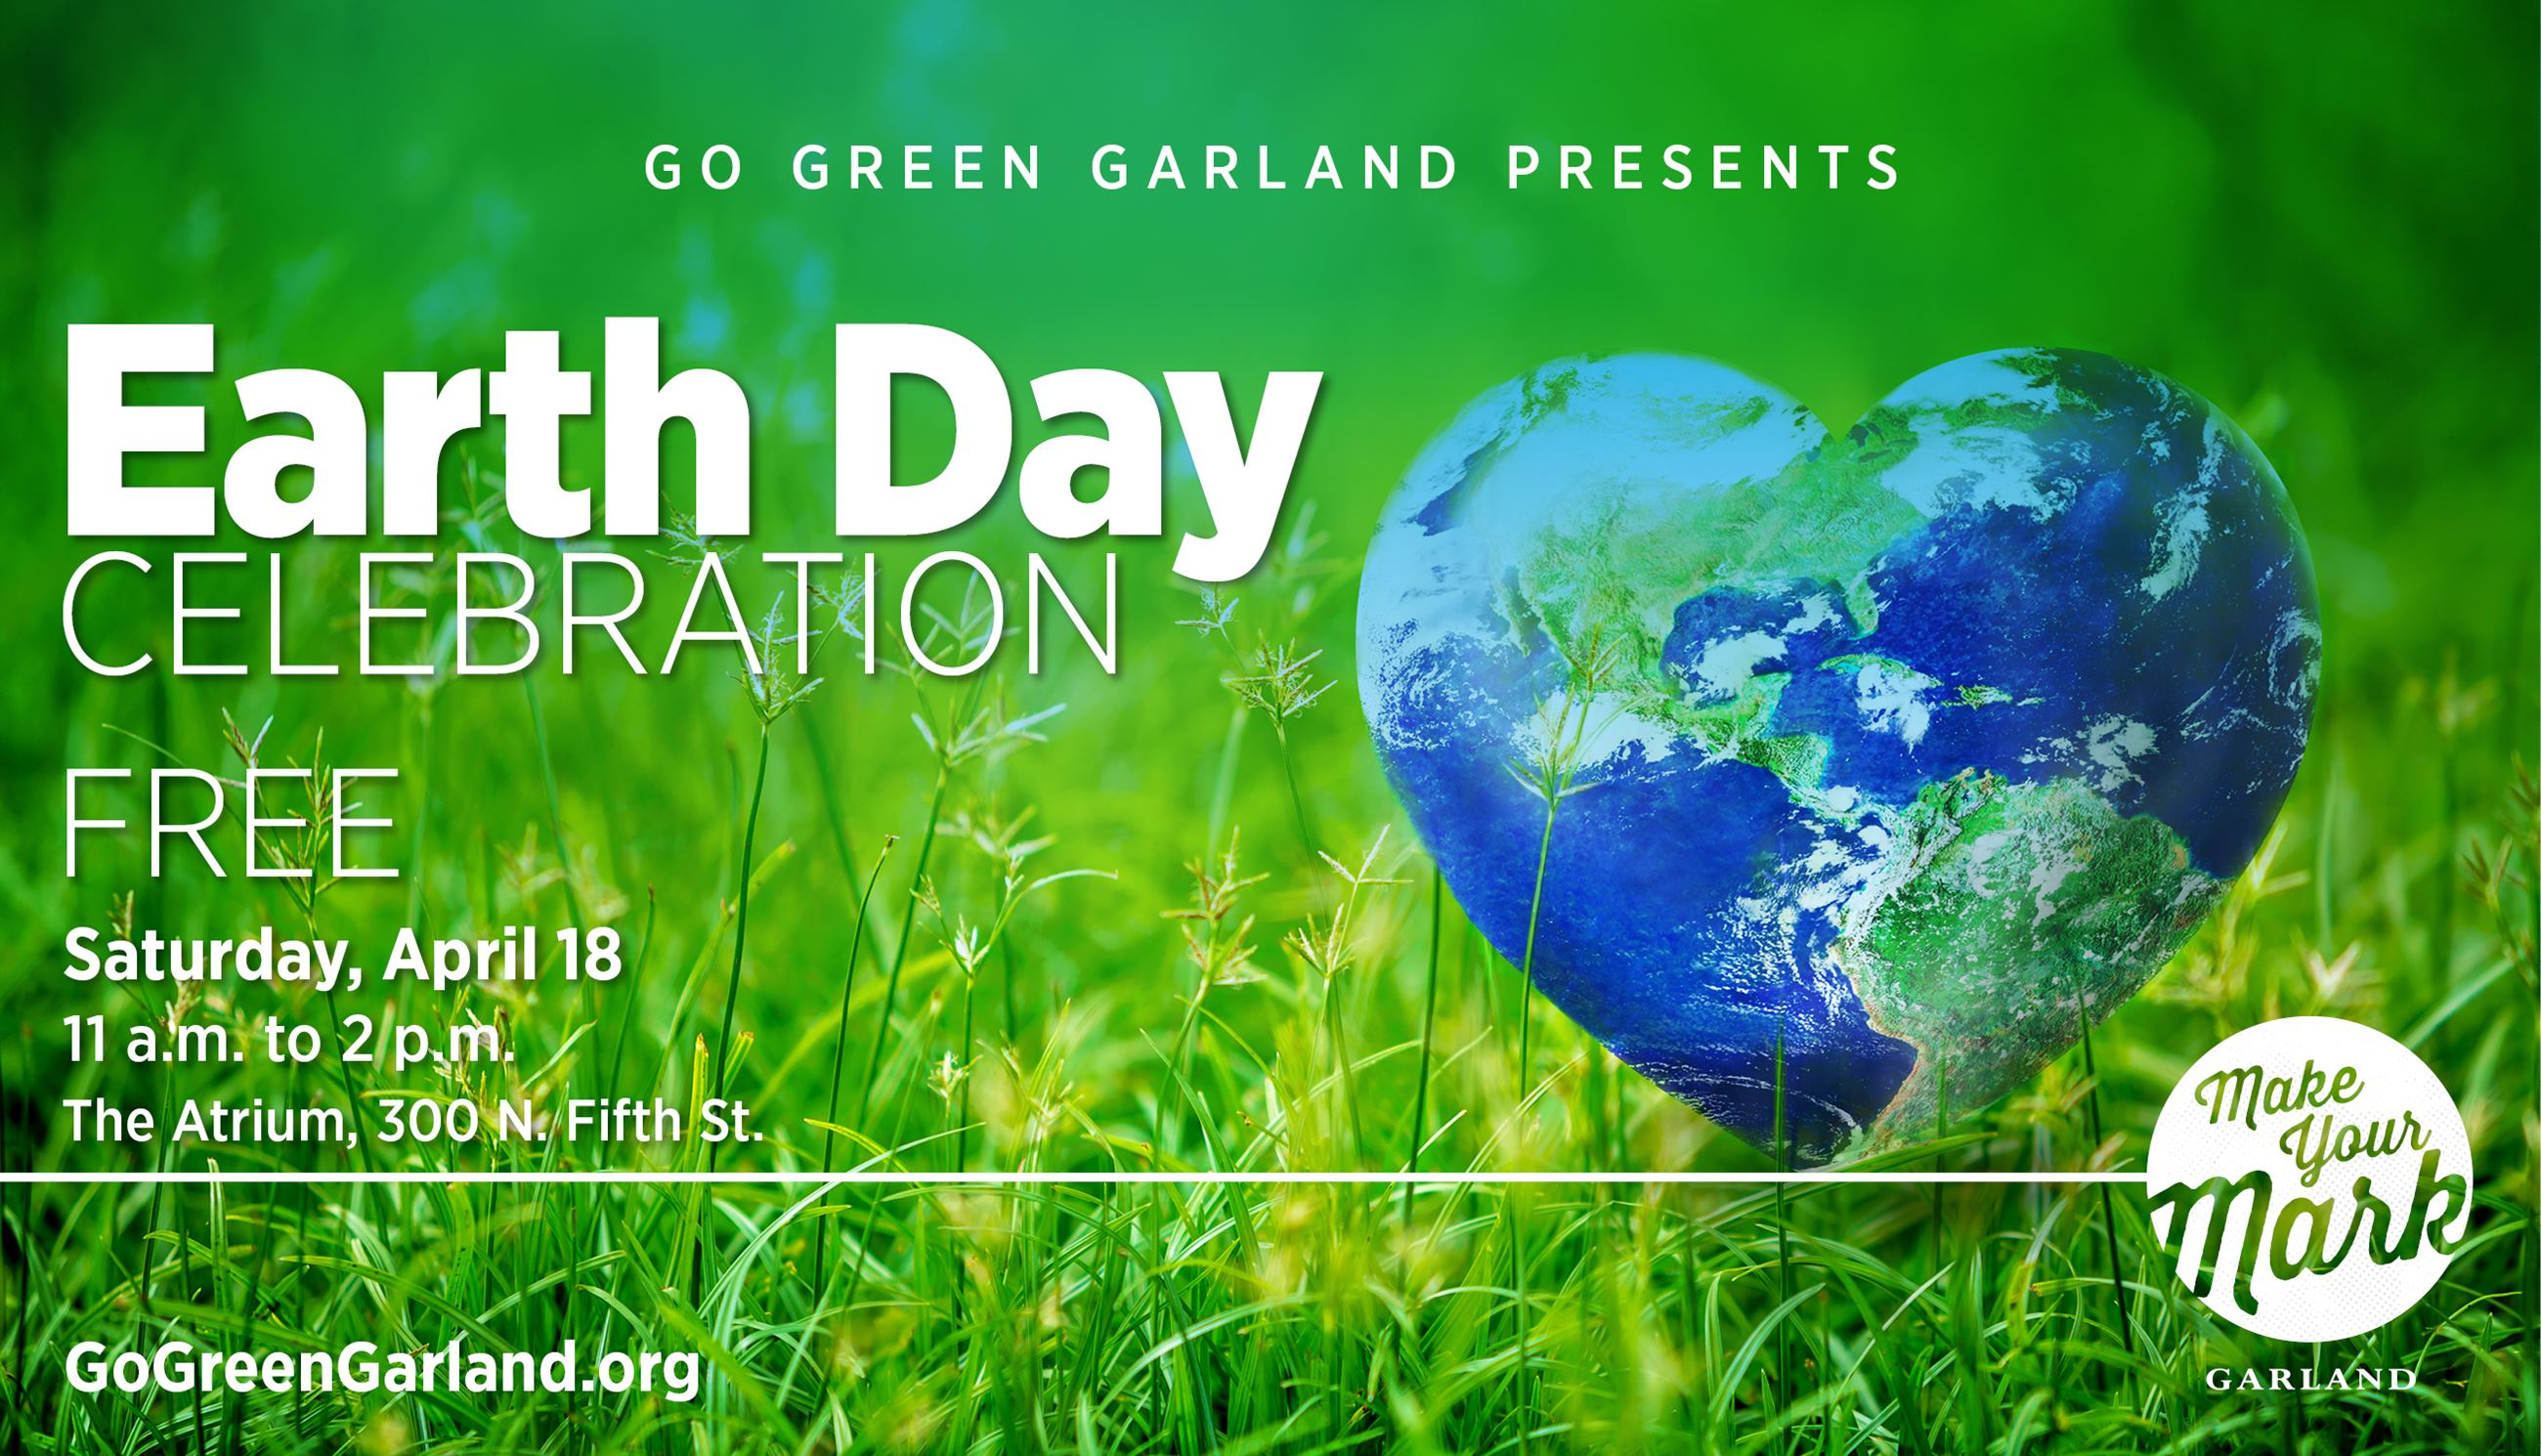 Garland's Earth Day Celebration is April 18, 2020, from 11 a.m. to 2 p.m. at The Atrium